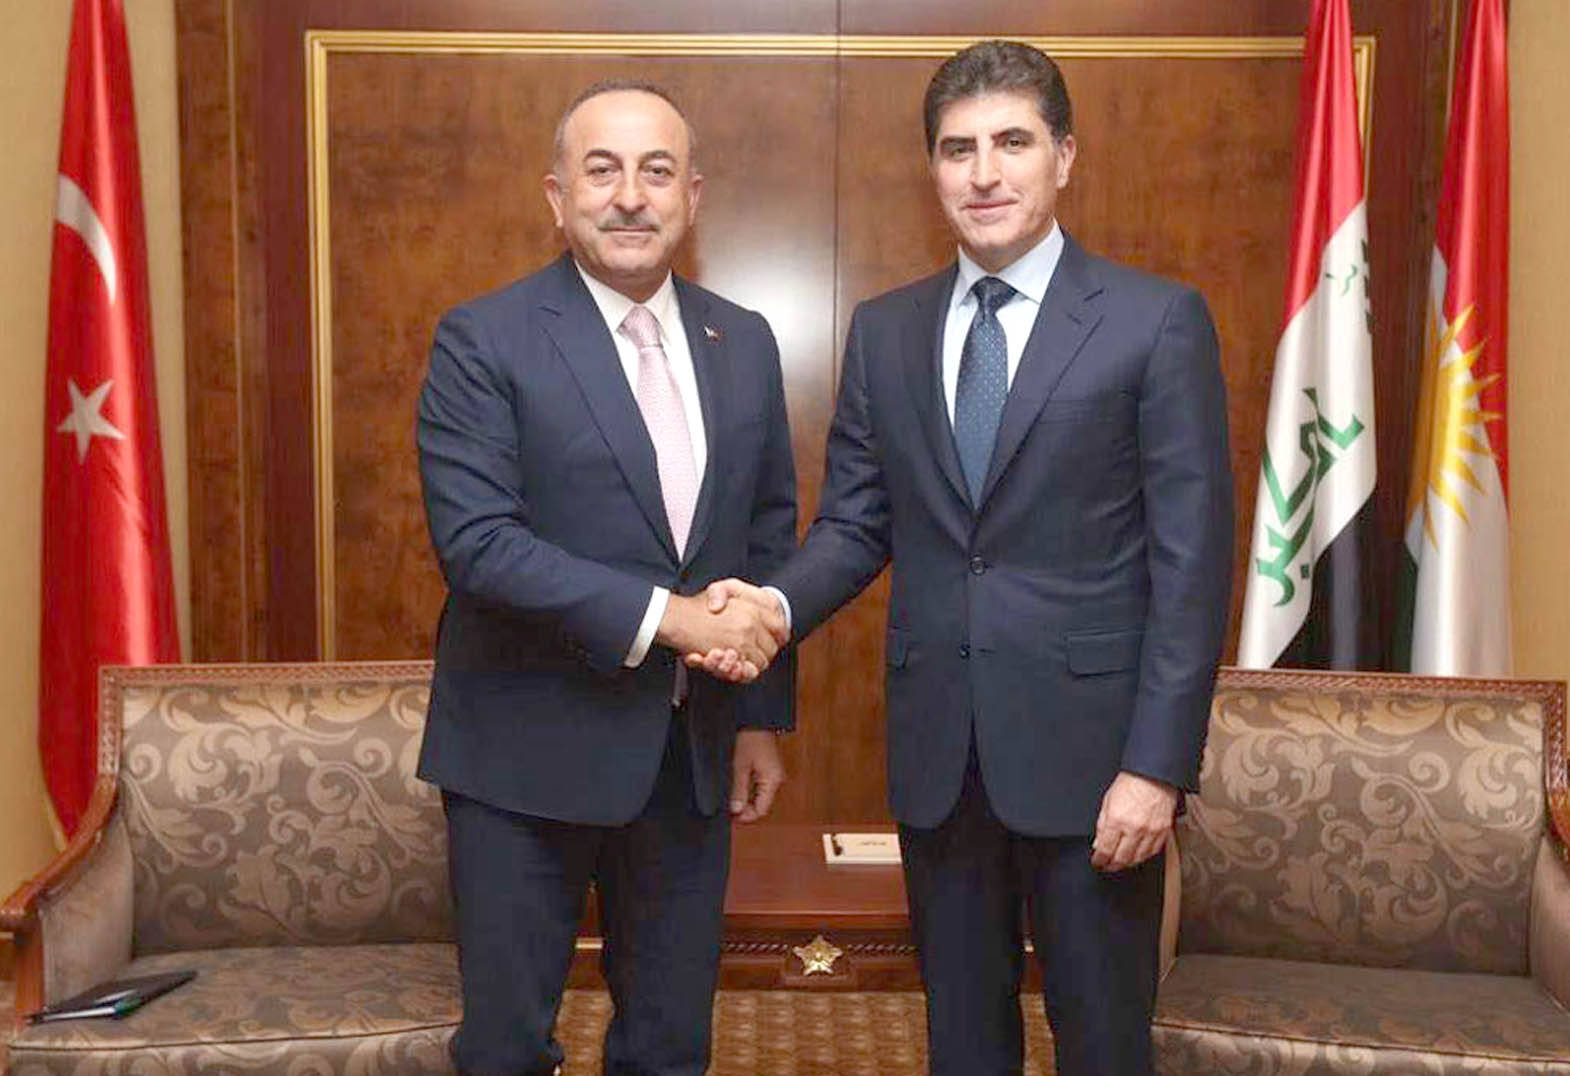 Contentious issues. Turkish Foreign Minister Mevlut Cavusoglu (L) meets with President of Iraqi Kurdistan Nechirvan Barzani during Barzani's inauguration ceremony, in Erbil, June 10. (DPA)